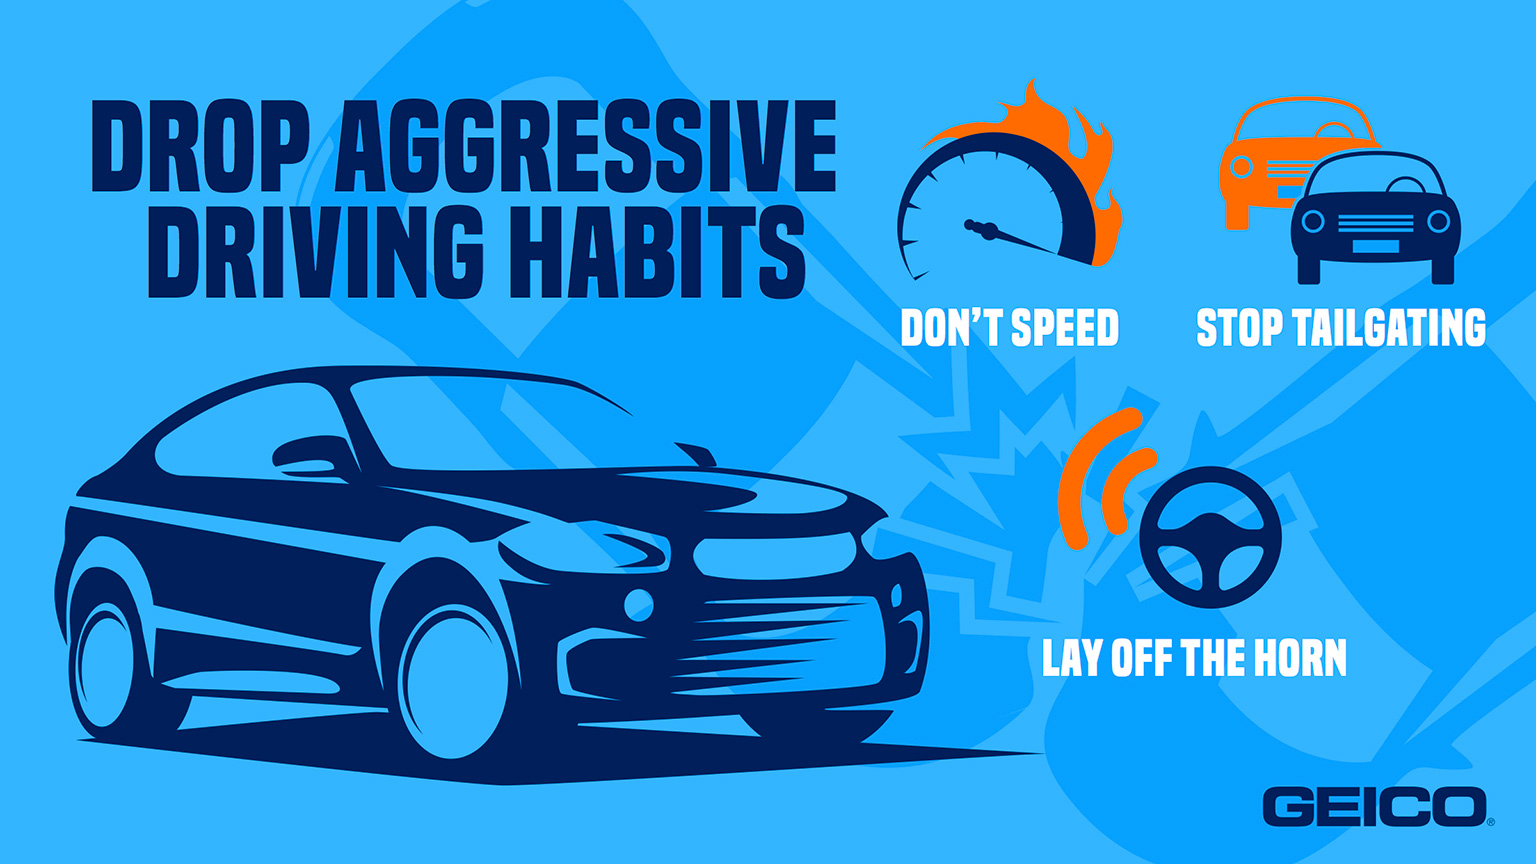 GEICO graphic with tips to avoid aggressive driving